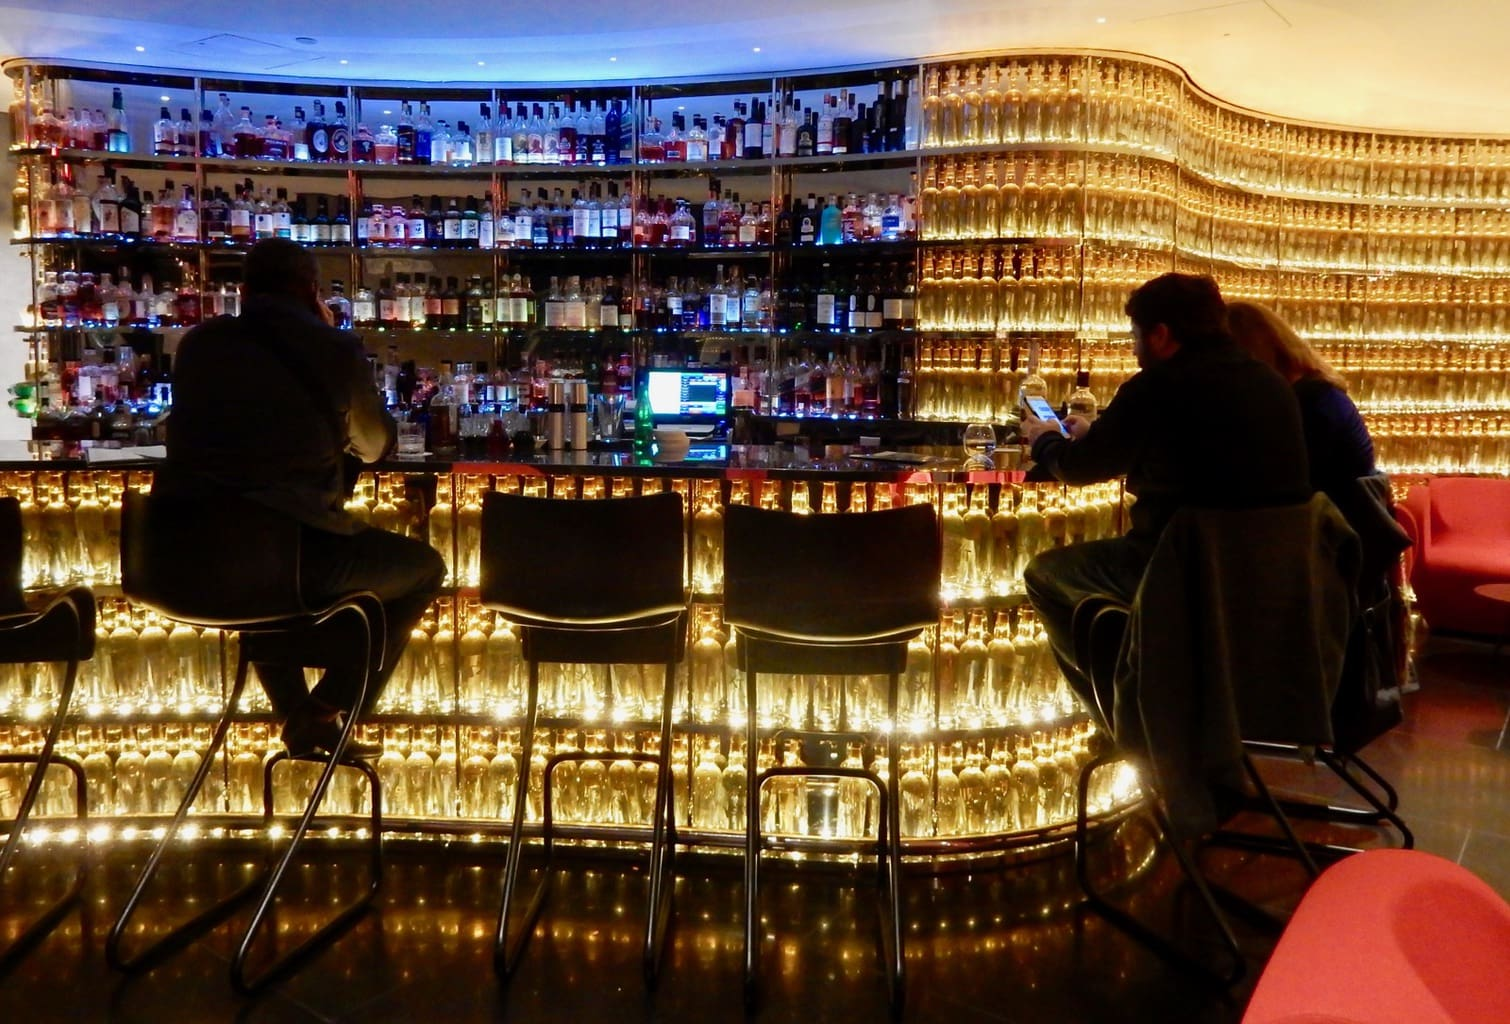 Next Whiskey Bar, Watergate Hotel, Washington DC